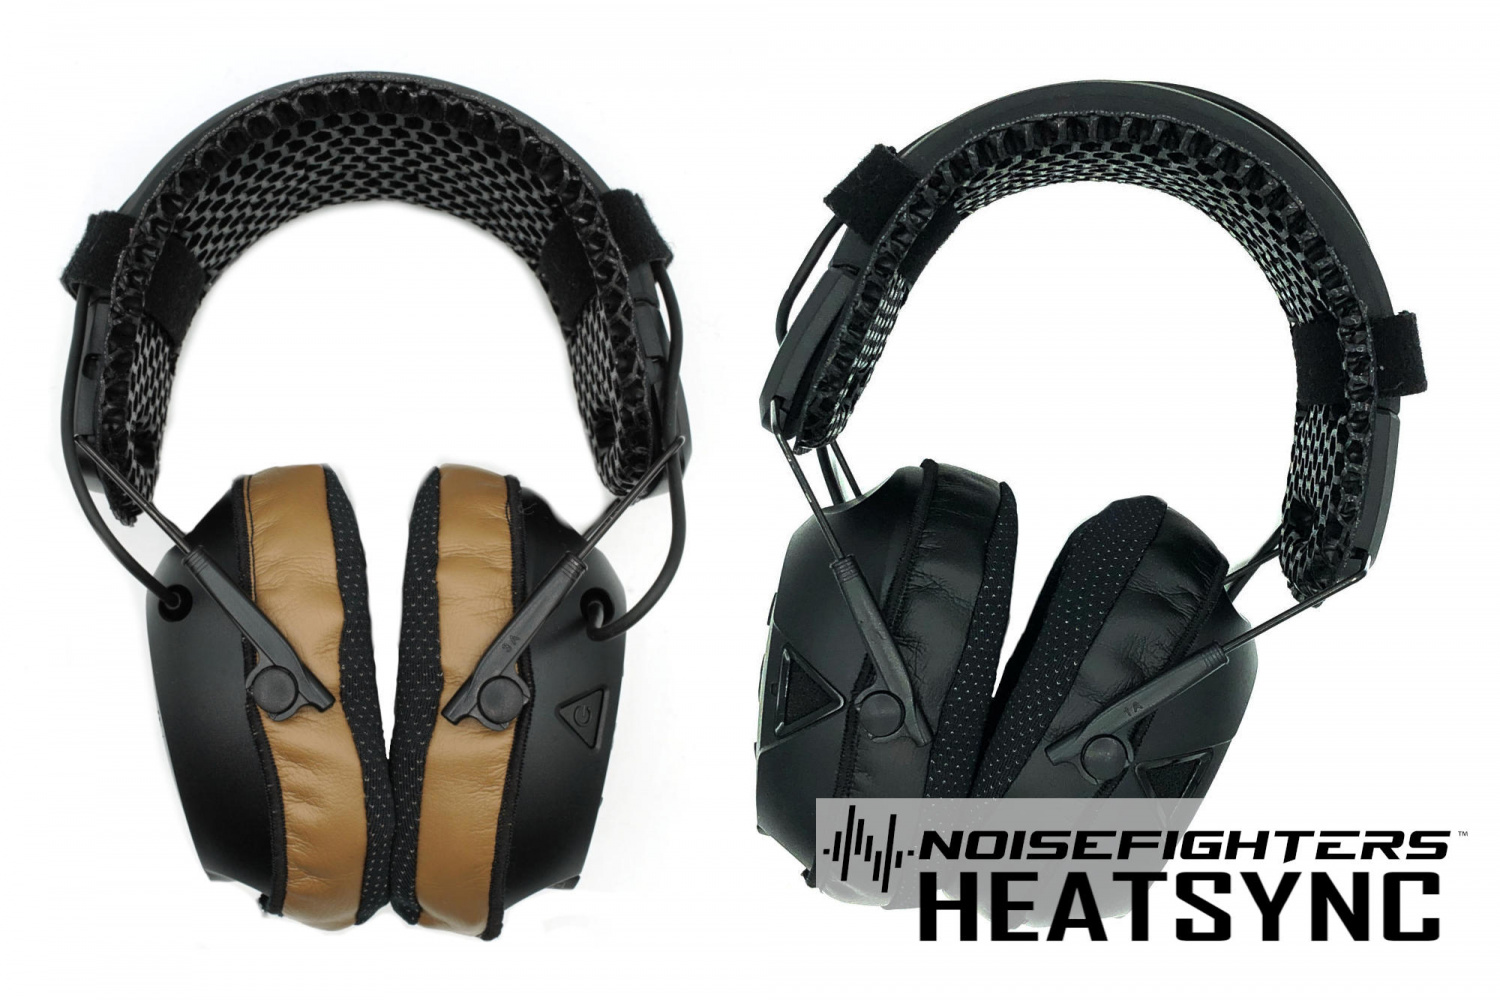 HeatSync covers use an anti-microbial, silver-embedded fabric, and are currently available in coyote tan or black.